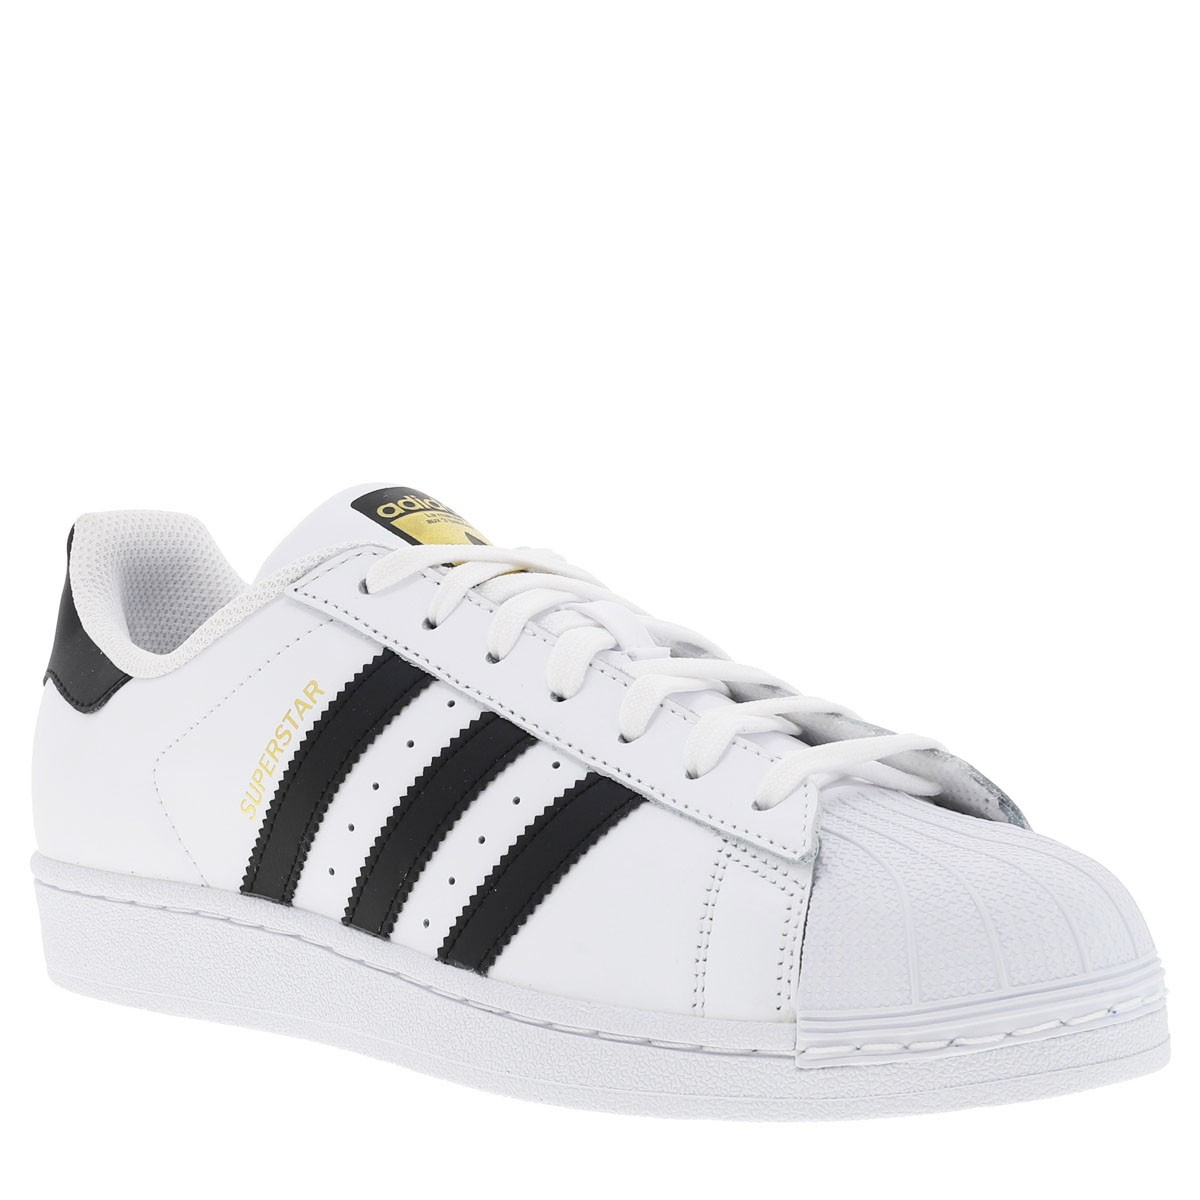 ADIDAS ORIGINALS Baskets Superstar femme blanc